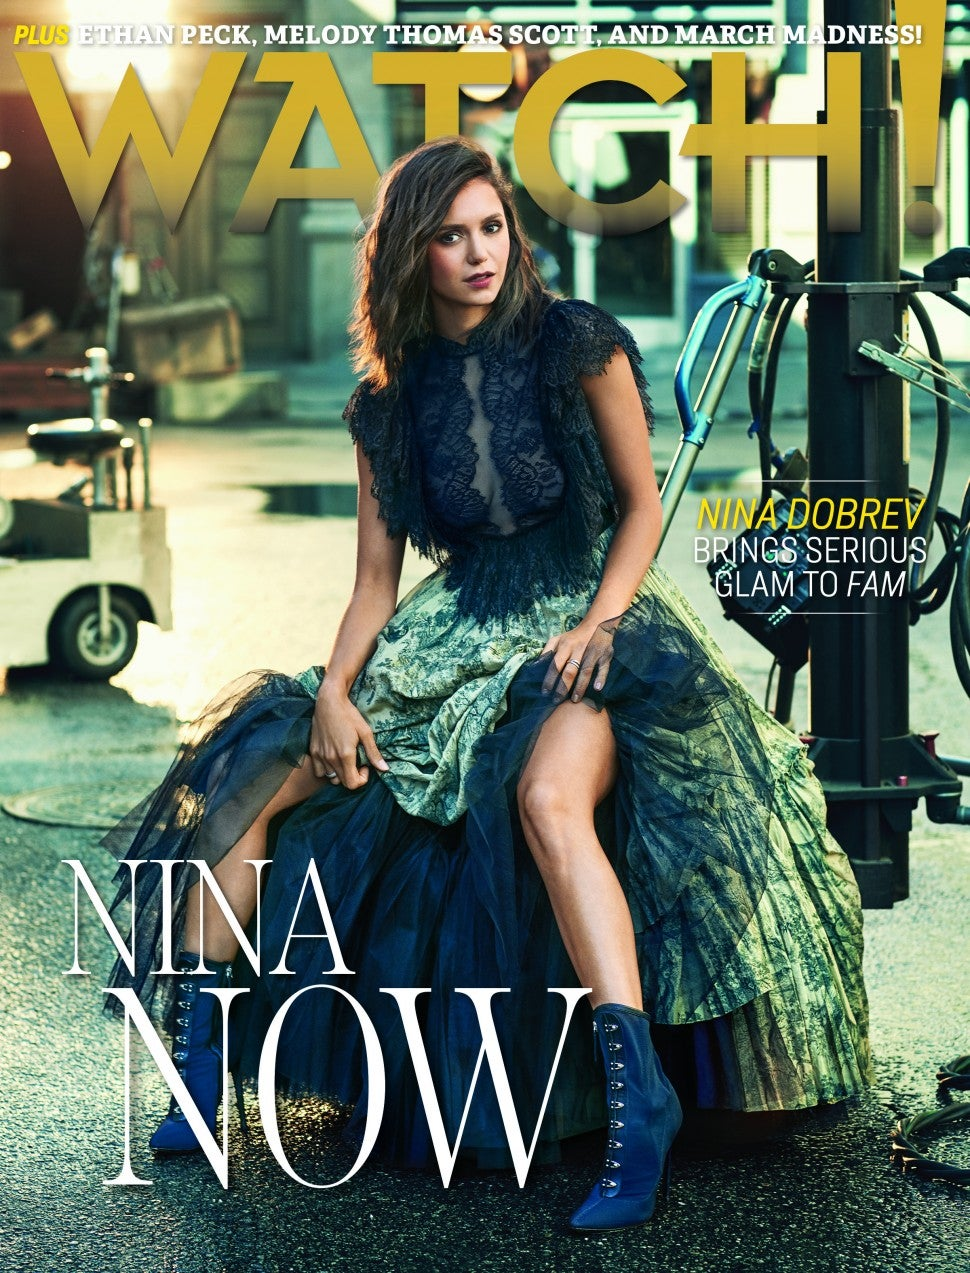 Nina Dobrev covers CBS Watch! Magazine